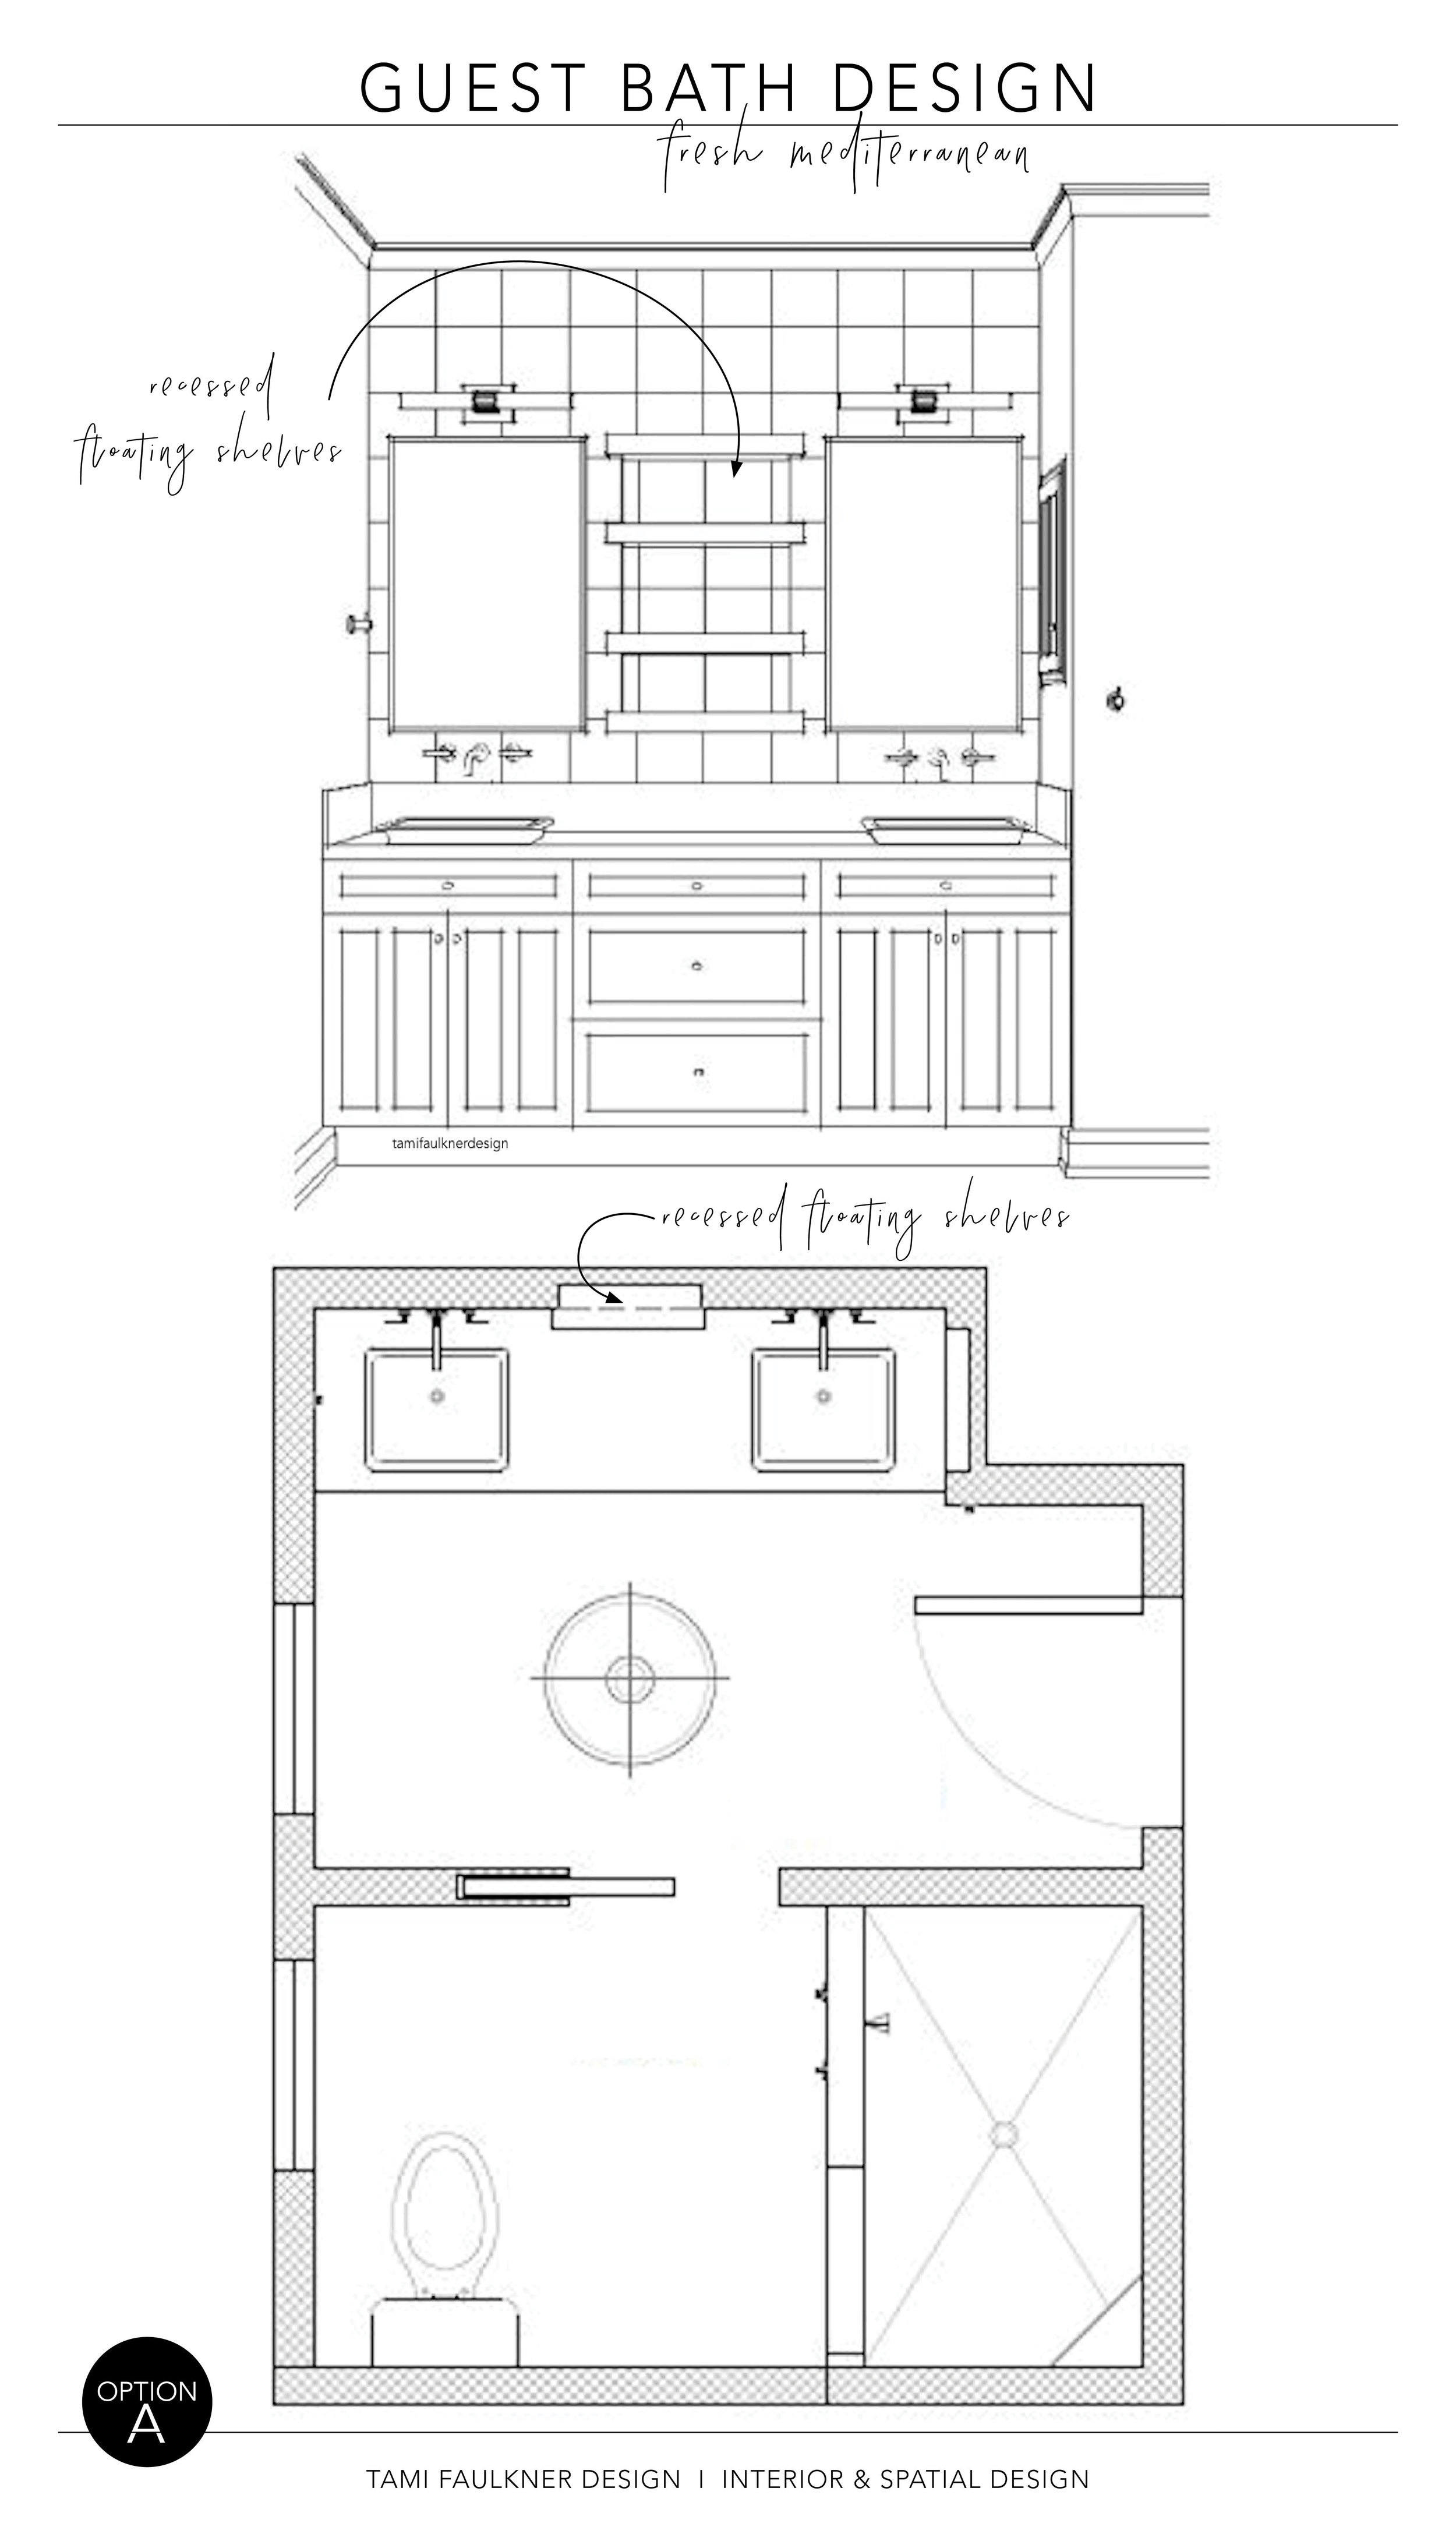 OPTION A - FEATURE WALL + FLOOR PLAN